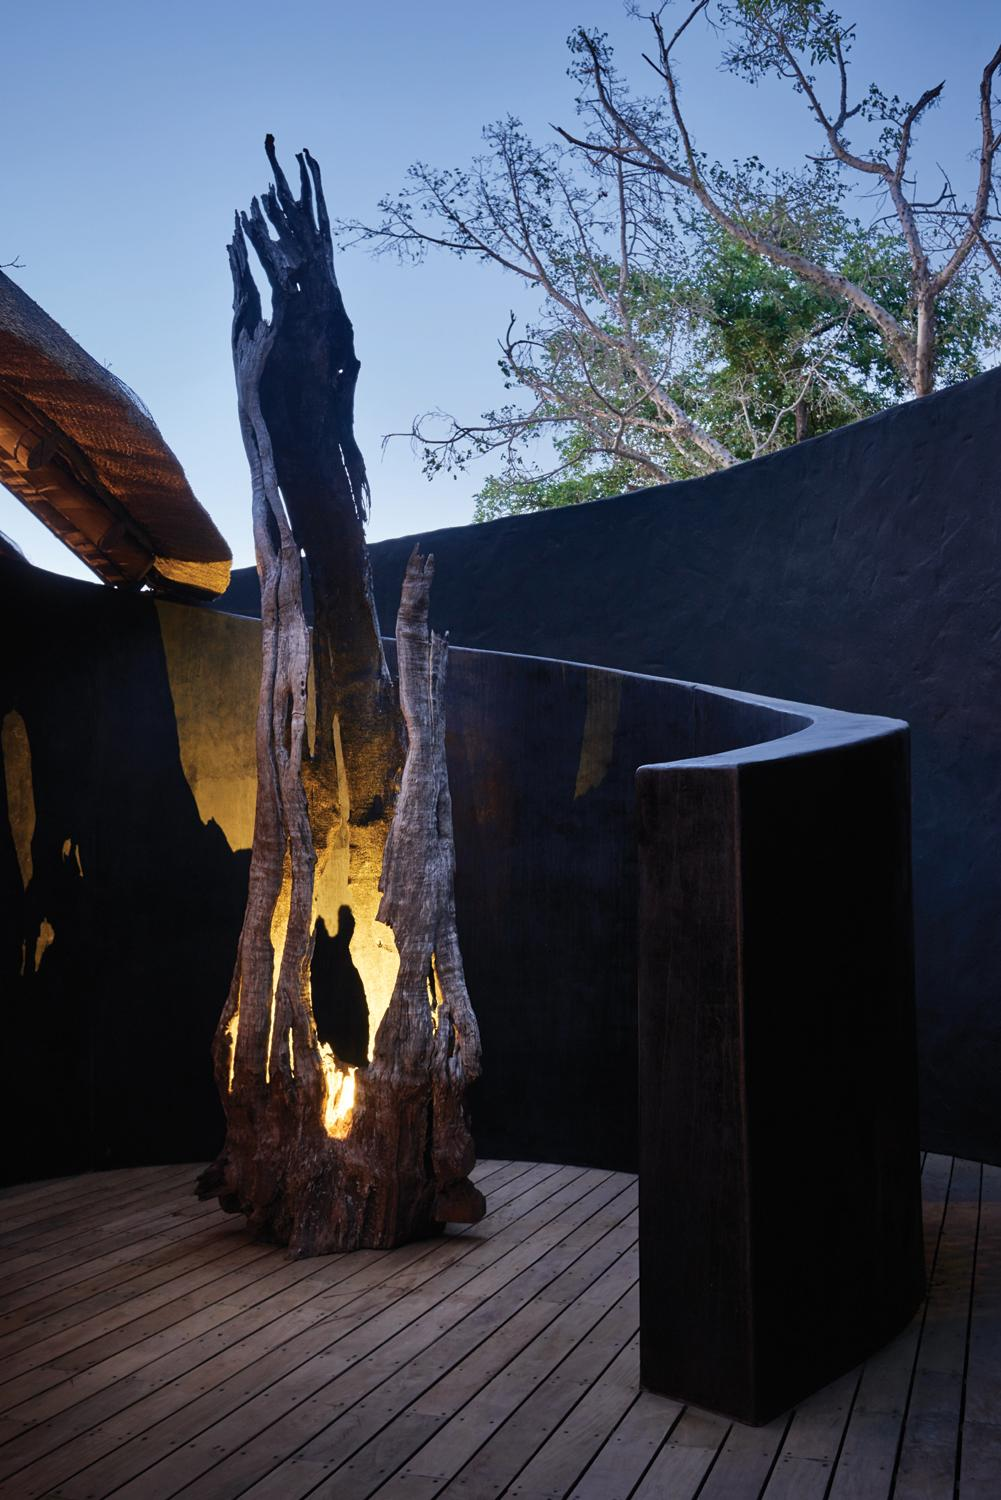 Many of elements are artisanal, specially commissioned and hand-made in Africa by Simon Beebe of BB Designs / Belmond Eagle Island Lodge Botswana